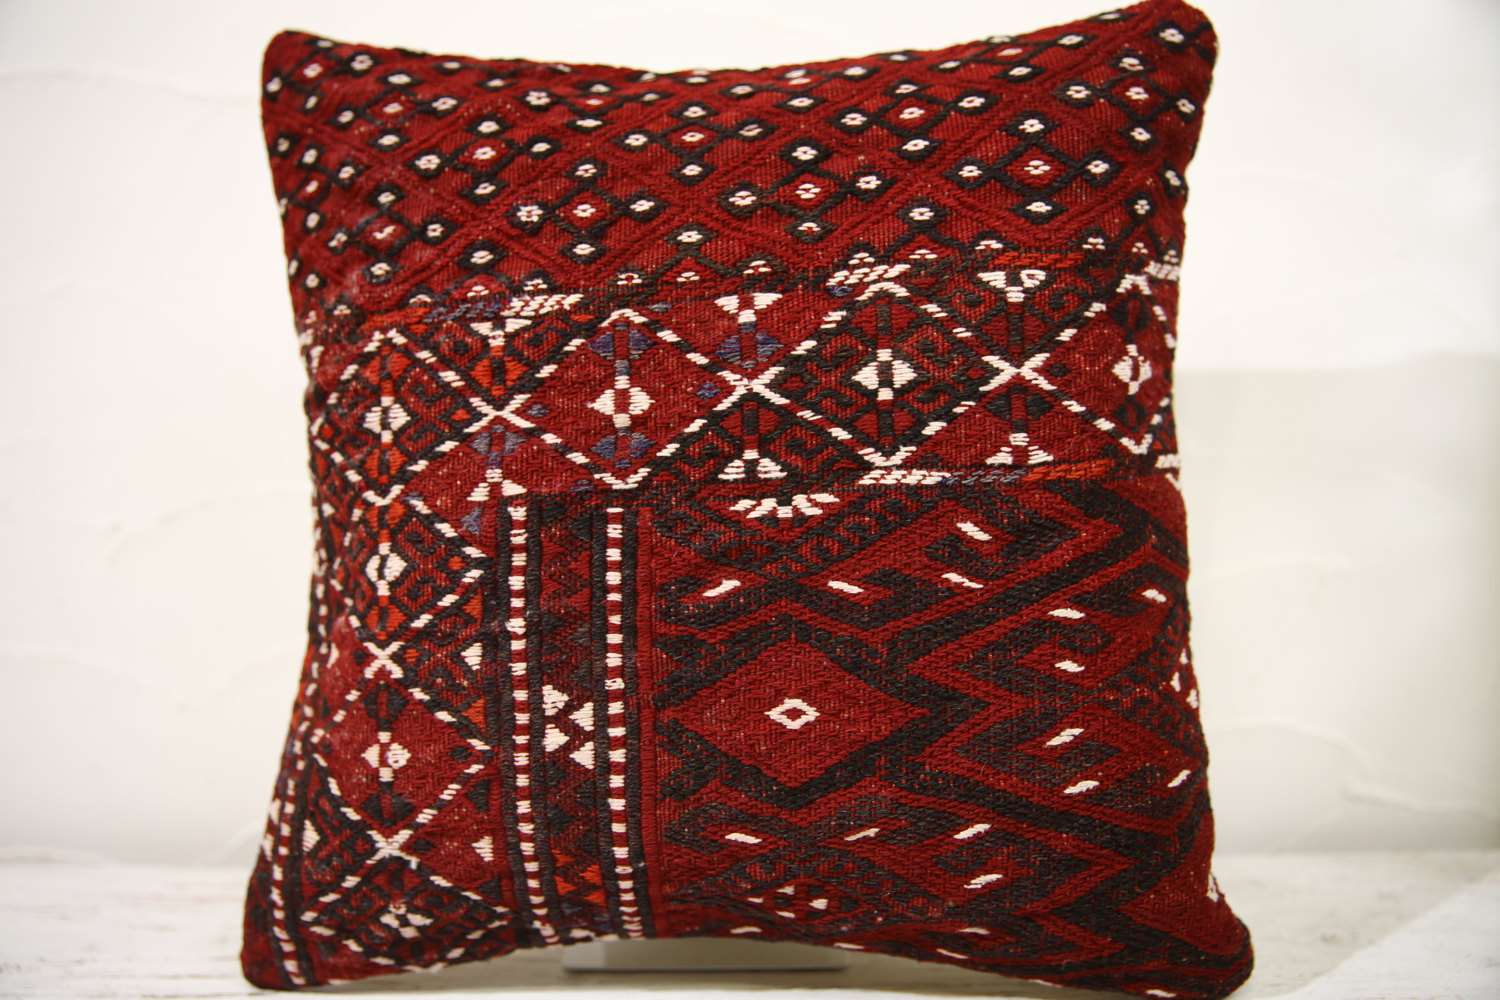 Kilim Pillows | 16x16 | Decorative Pillows | 775 | Accent Pillows,turkish pillow